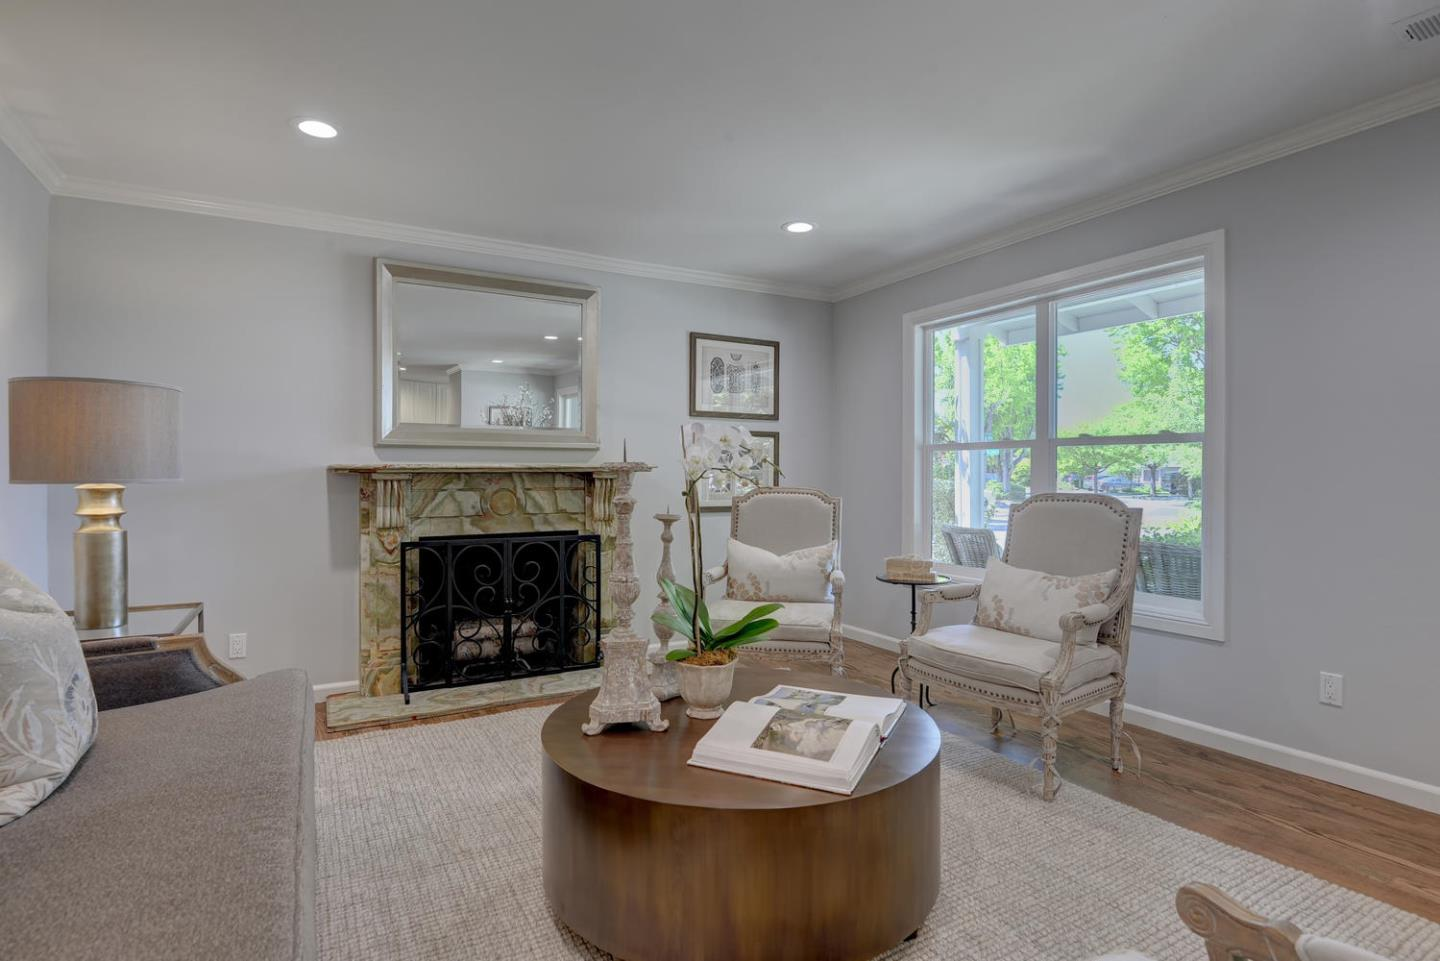 Additional photo for property listing at 1068 Sonoma Ave  MENLO PARK, CALIFORNIA 94025